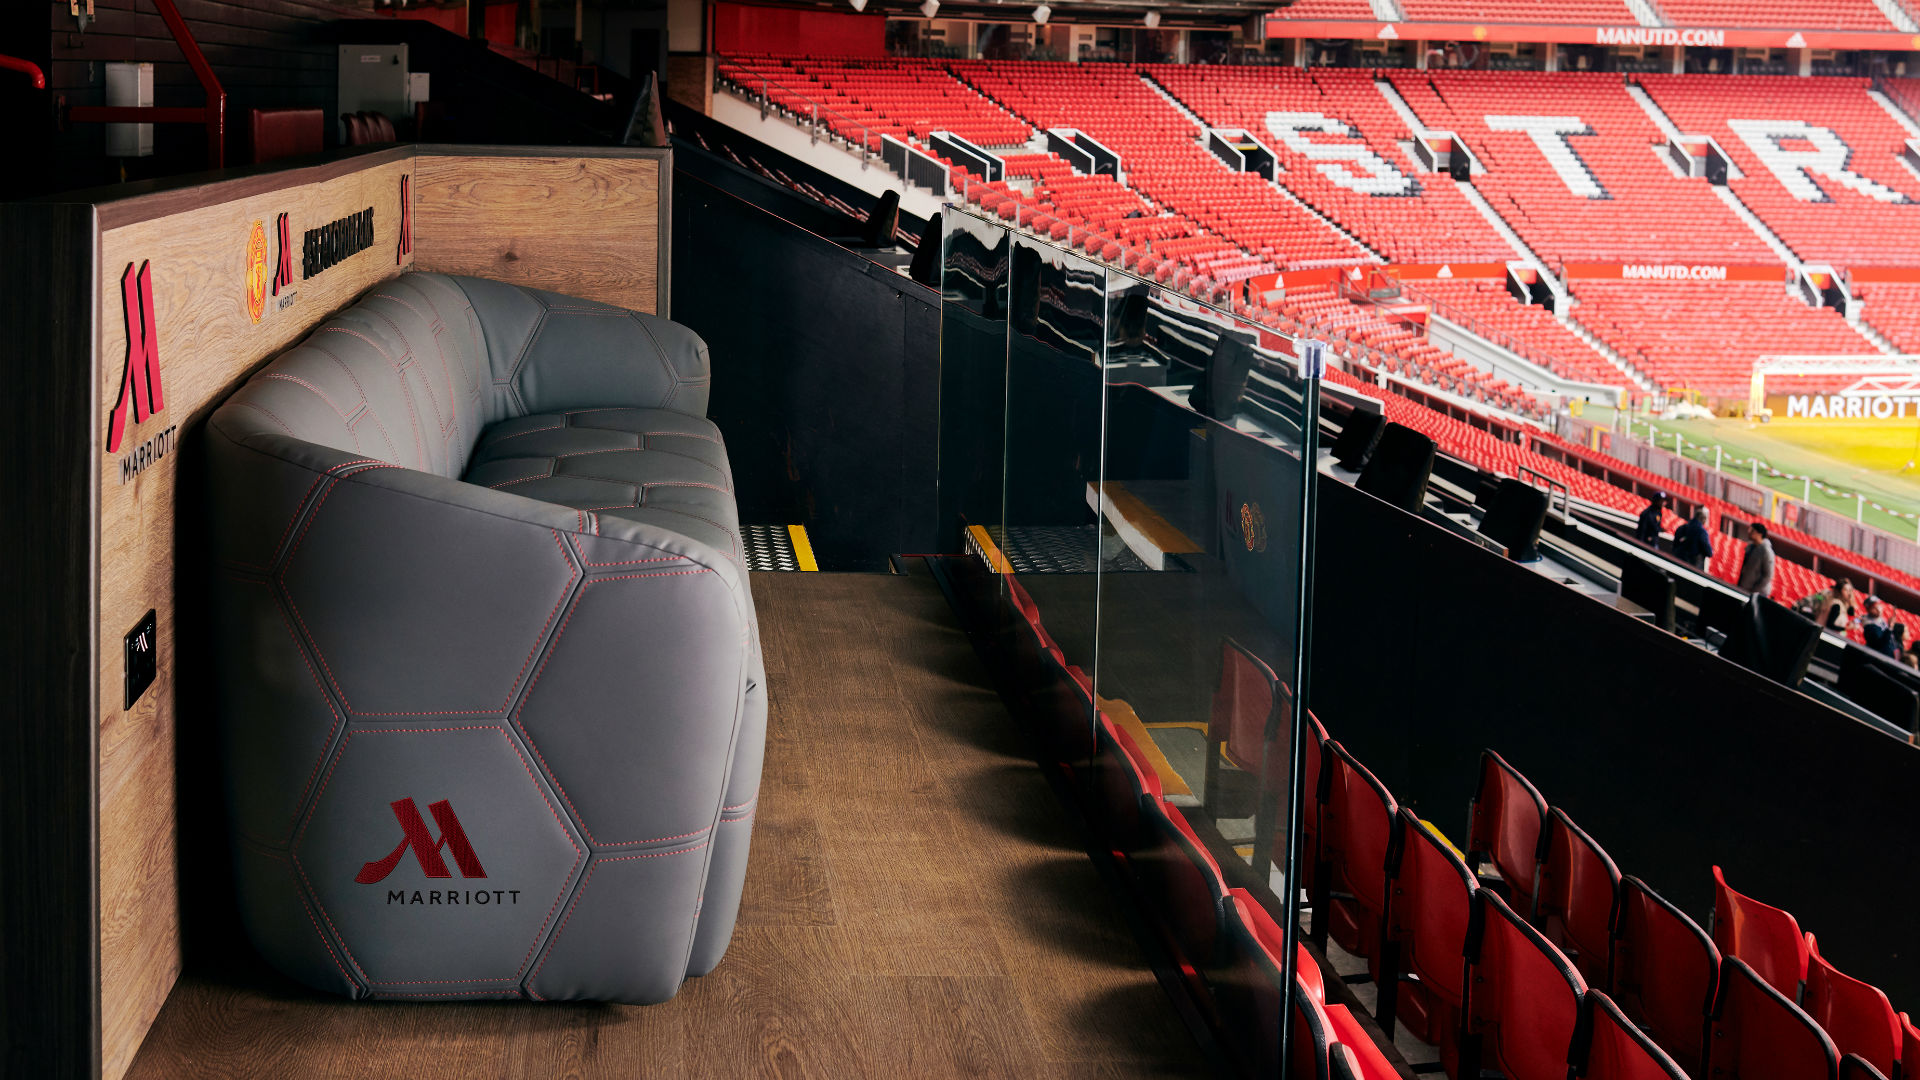 Manchester United Marriott Seat of Dreams